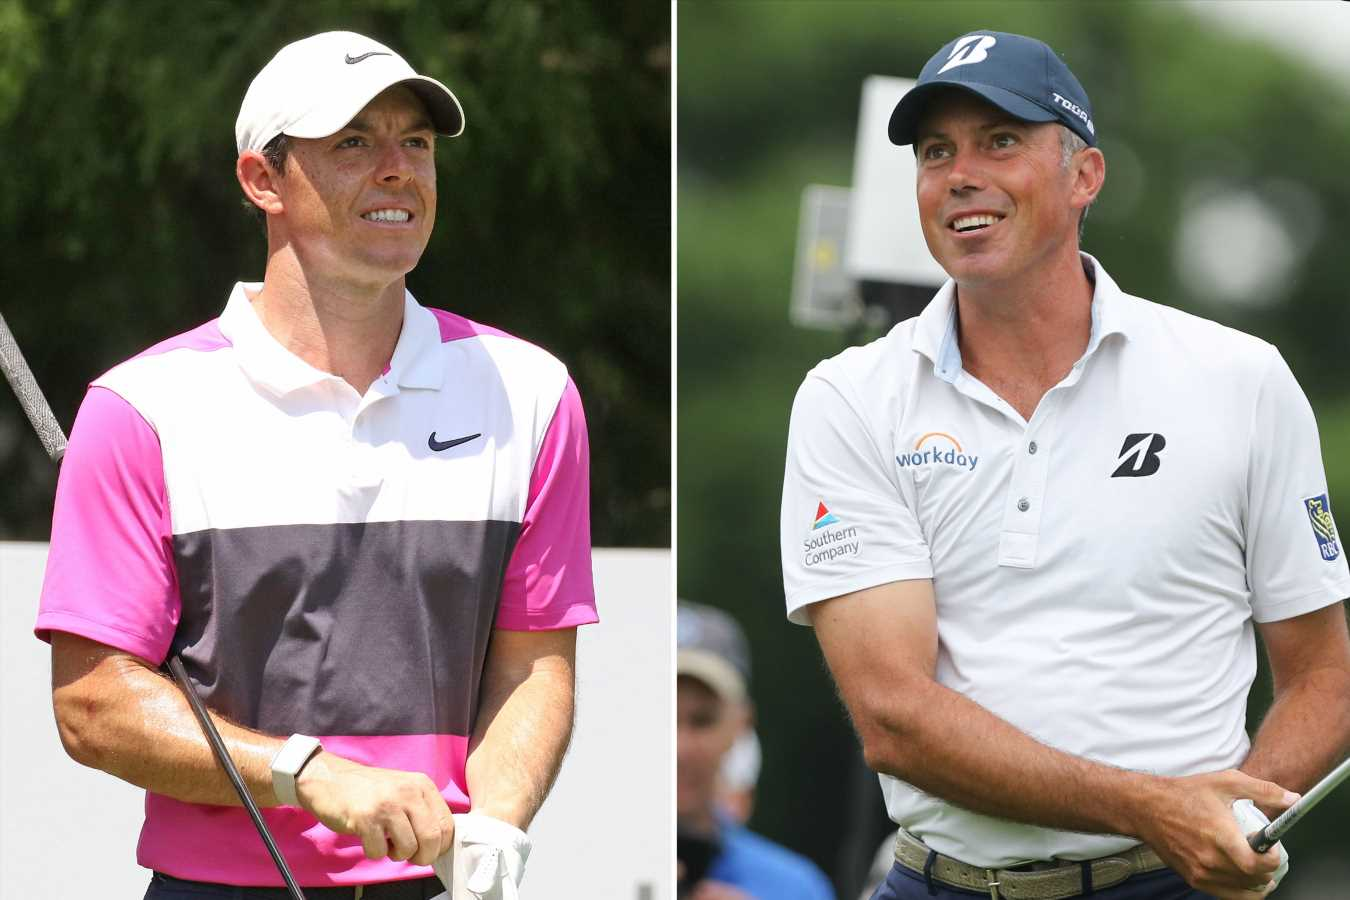 Rory McIlroy Hilariously Ribs Matt Kuchar Over Caddie Payment Controversy